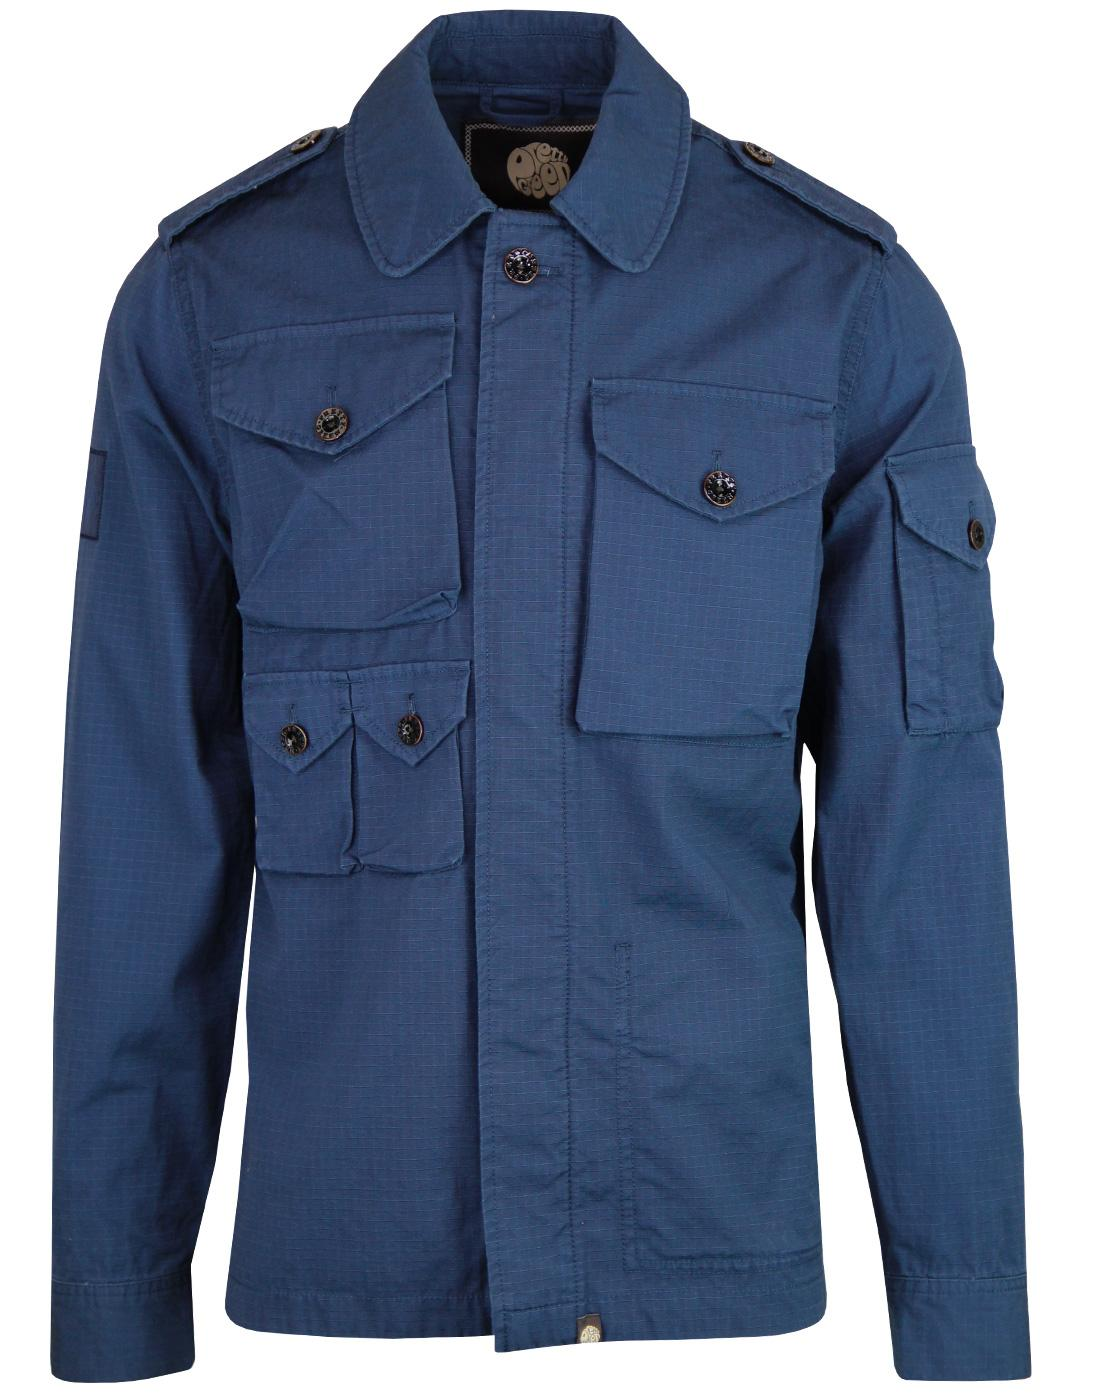 PRETTY GREEN Retro Ripstop M65 Field Jacket BLUE